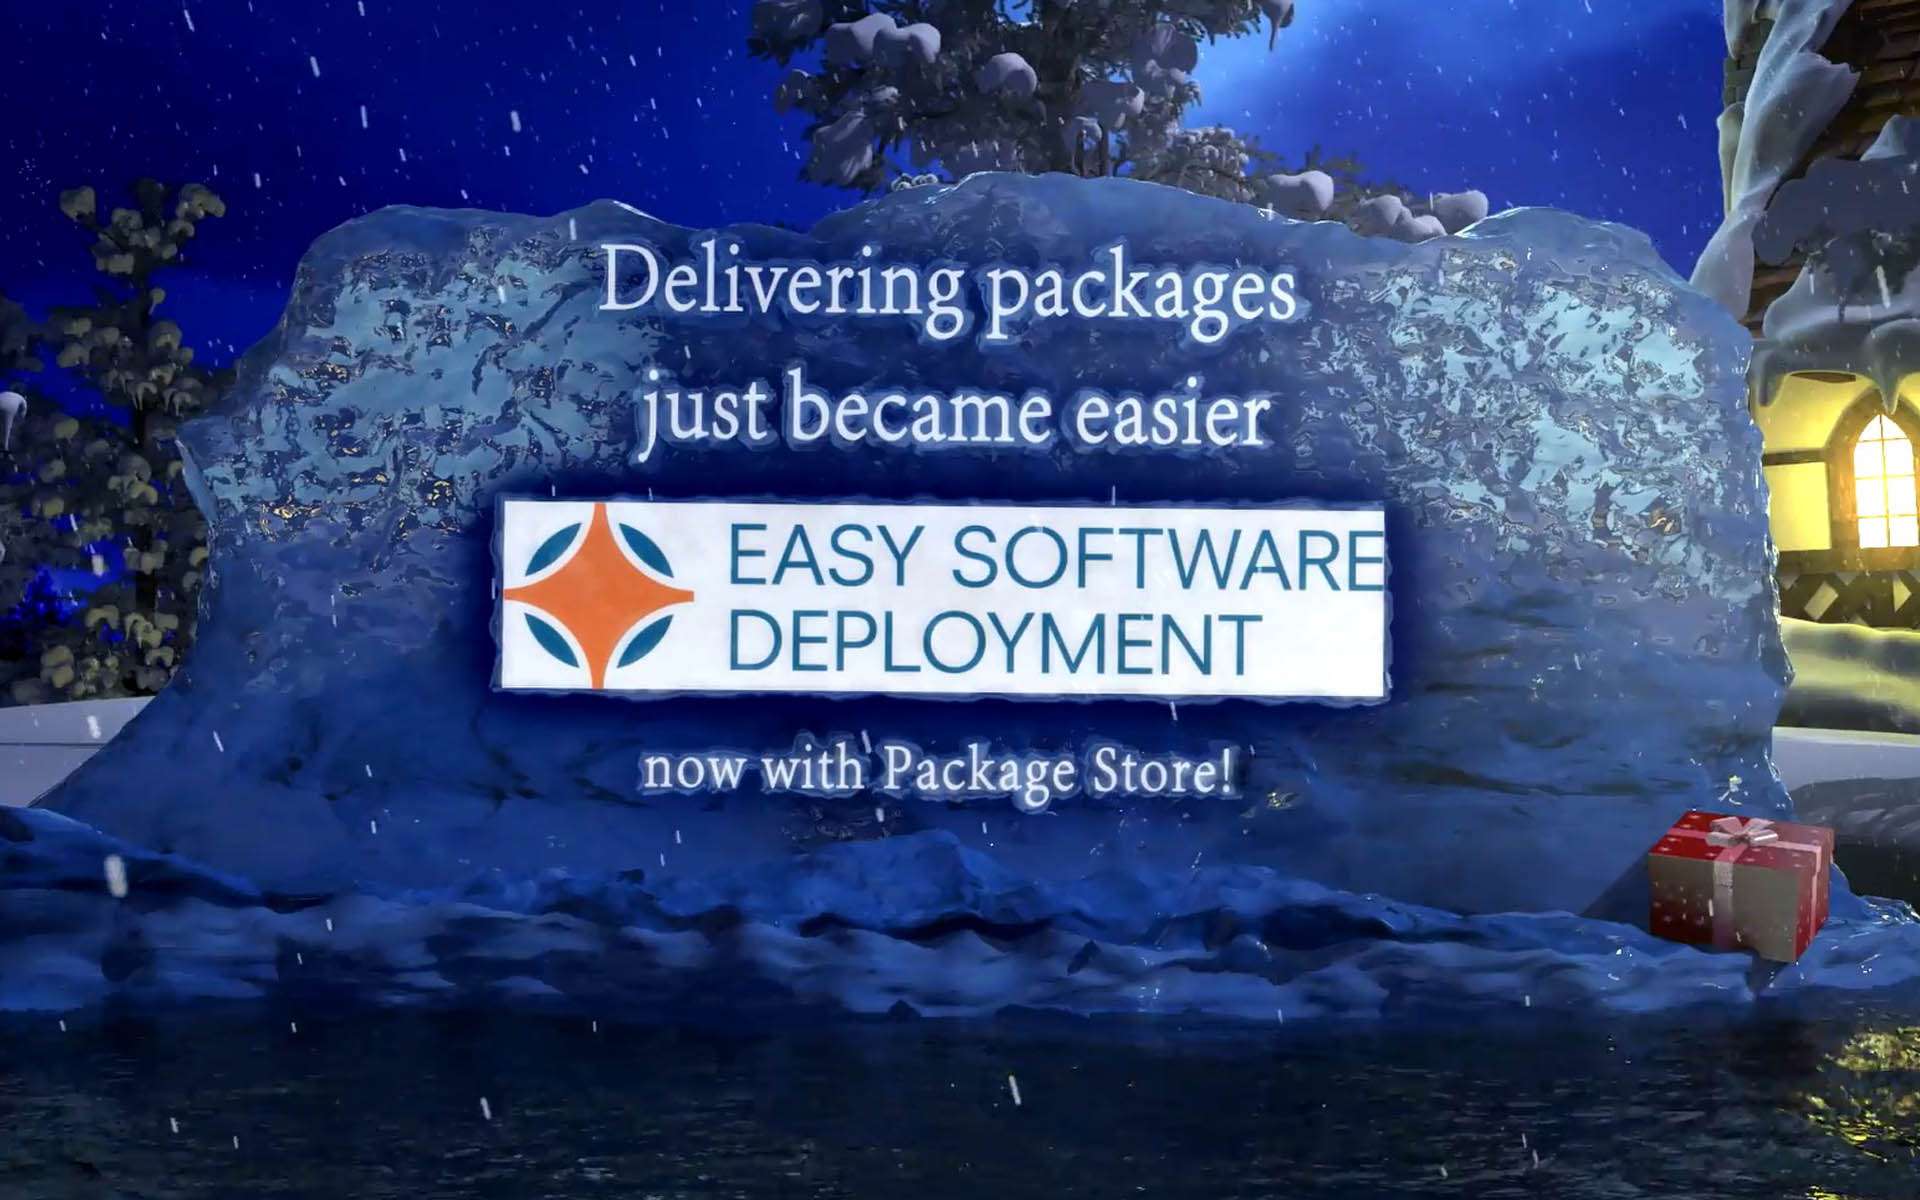 Easy Software Deployment 6.0 Release